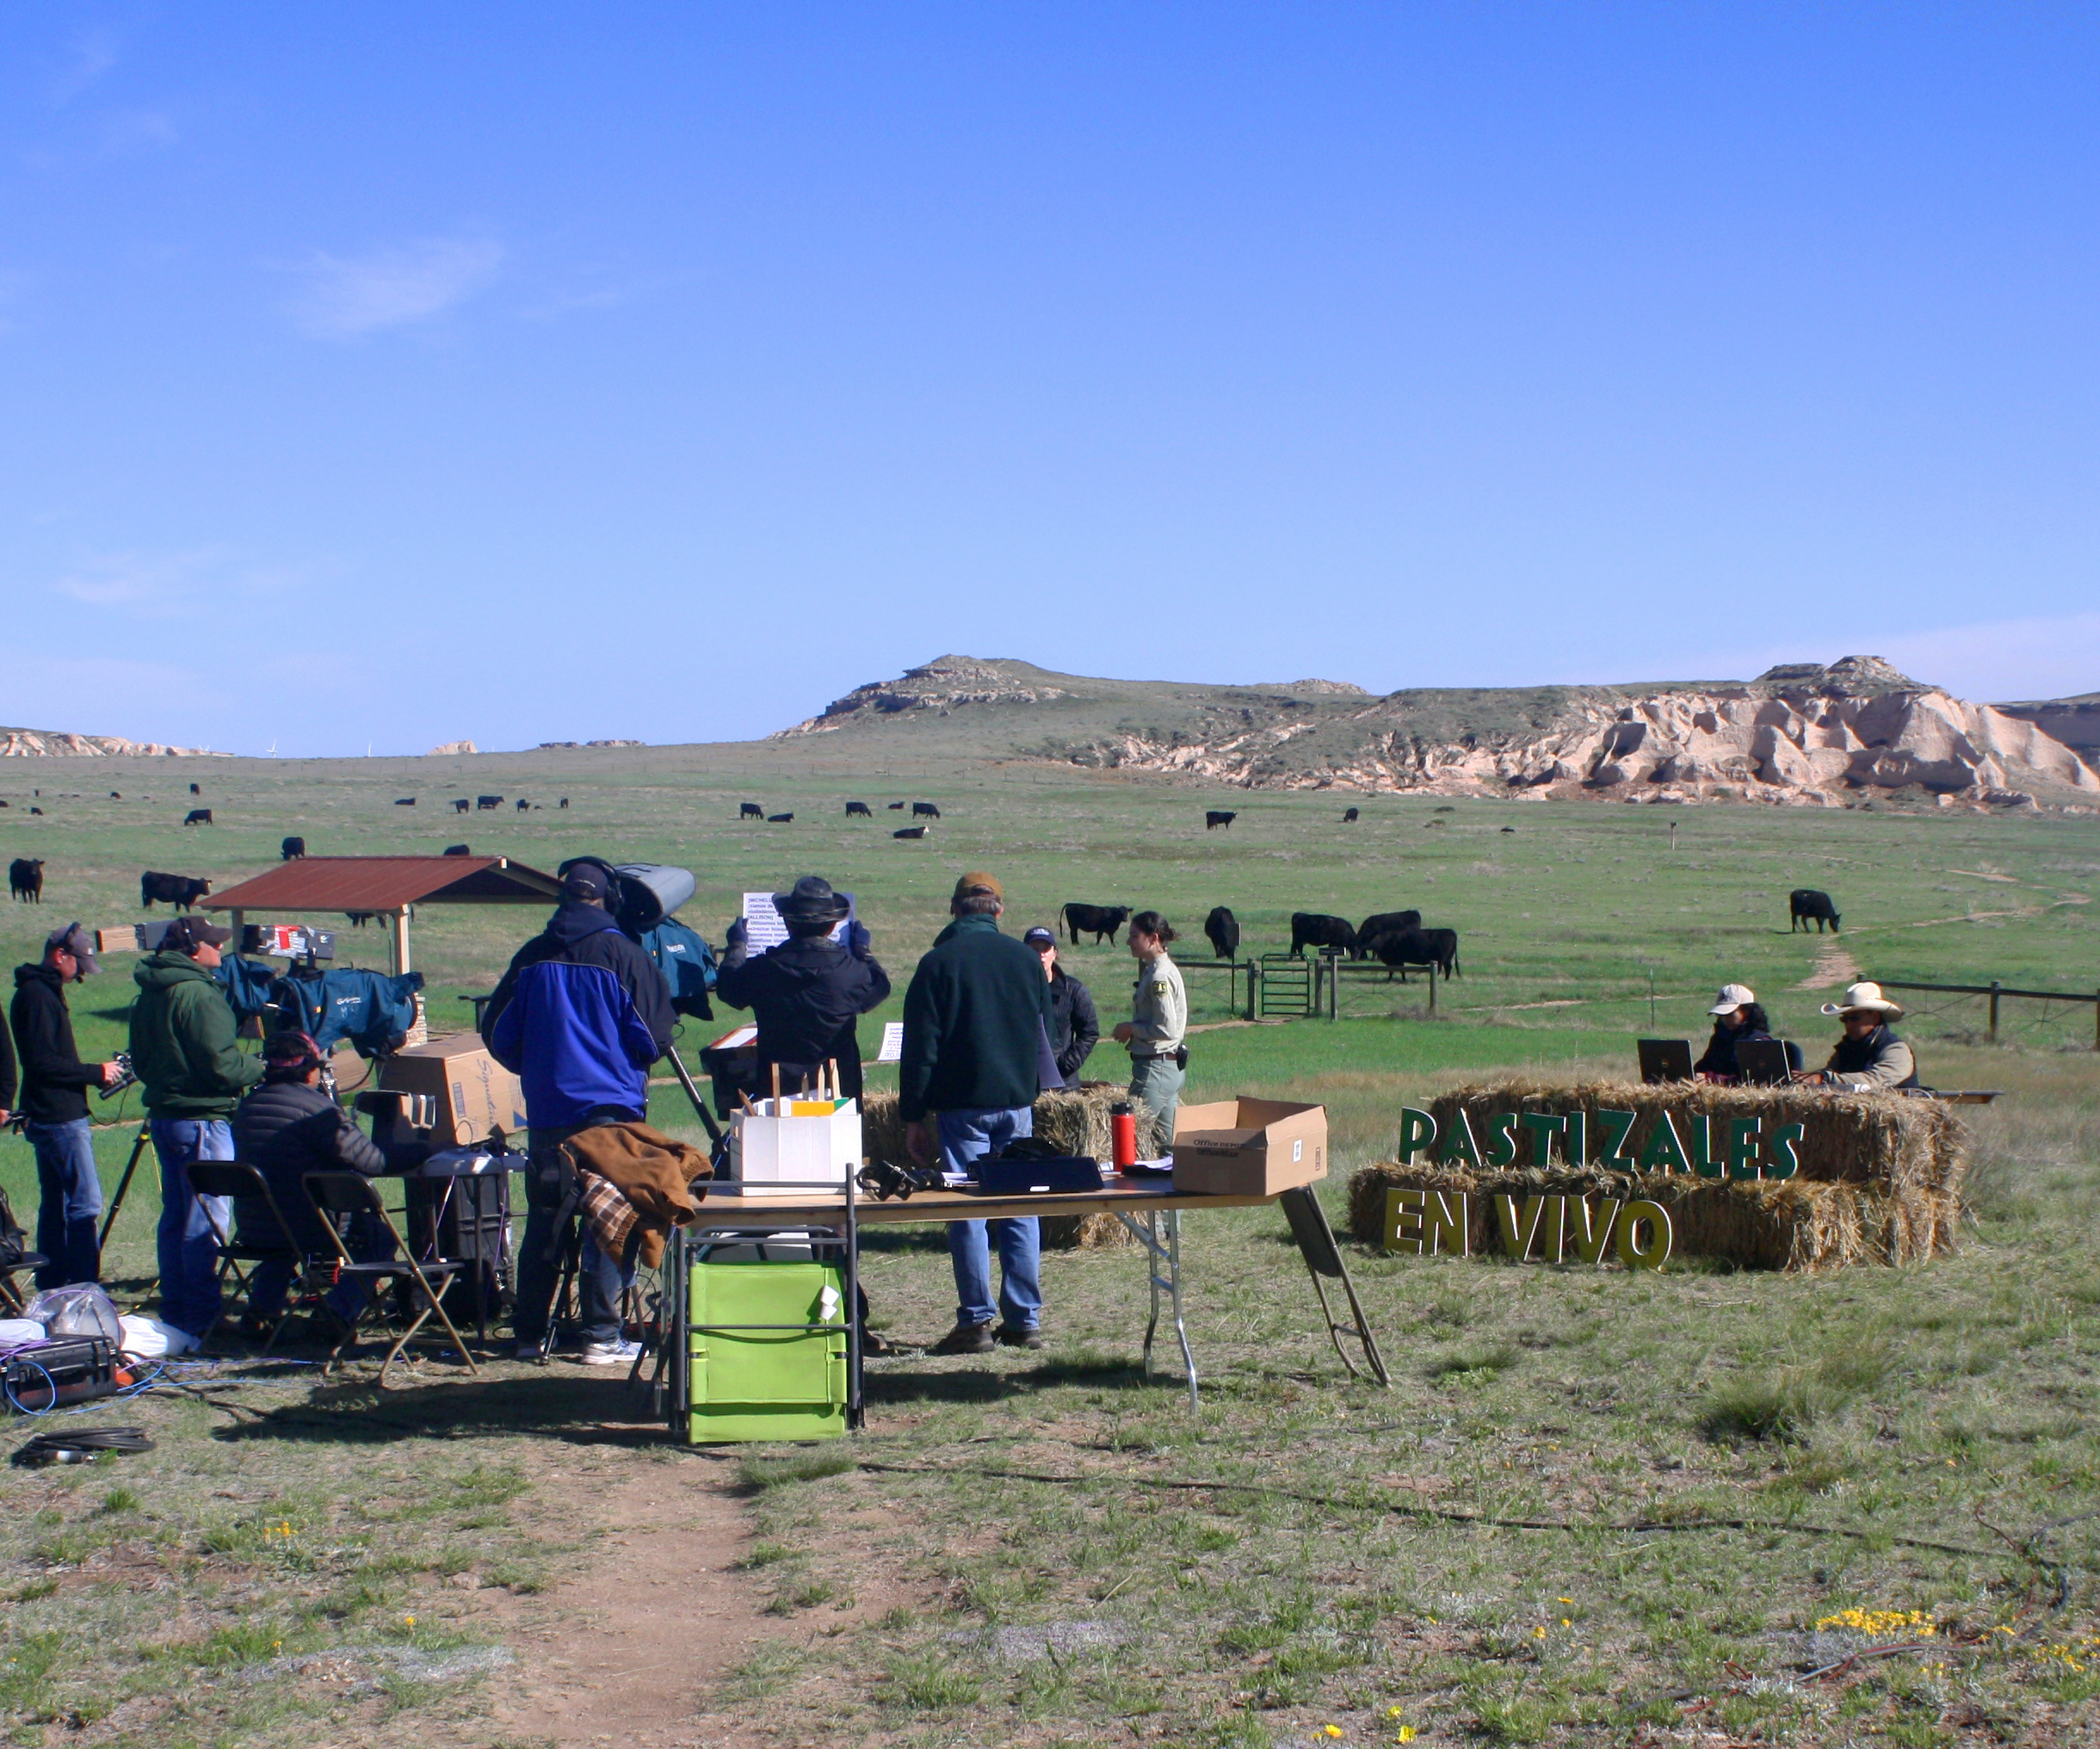 Photo: Cast and crew stand on the set of GrasslandsLIVE with grazing cattle and butte formations in the background.